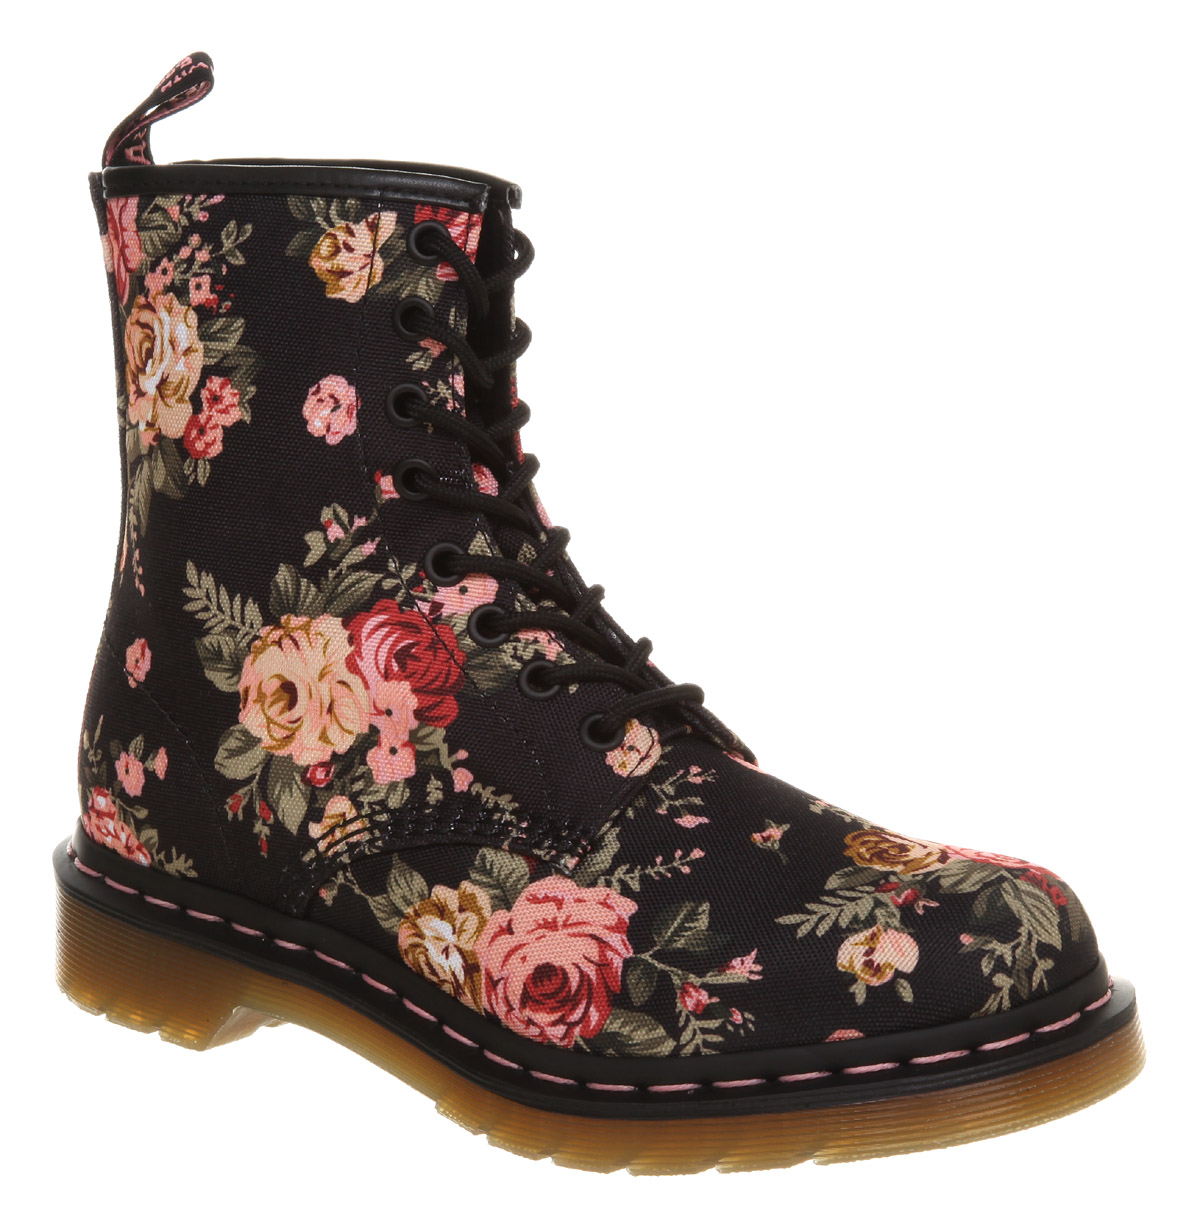 Womens-Dr-Martens-8-Eyelet-Lace-Up-Bt-Black-Floral-Boots